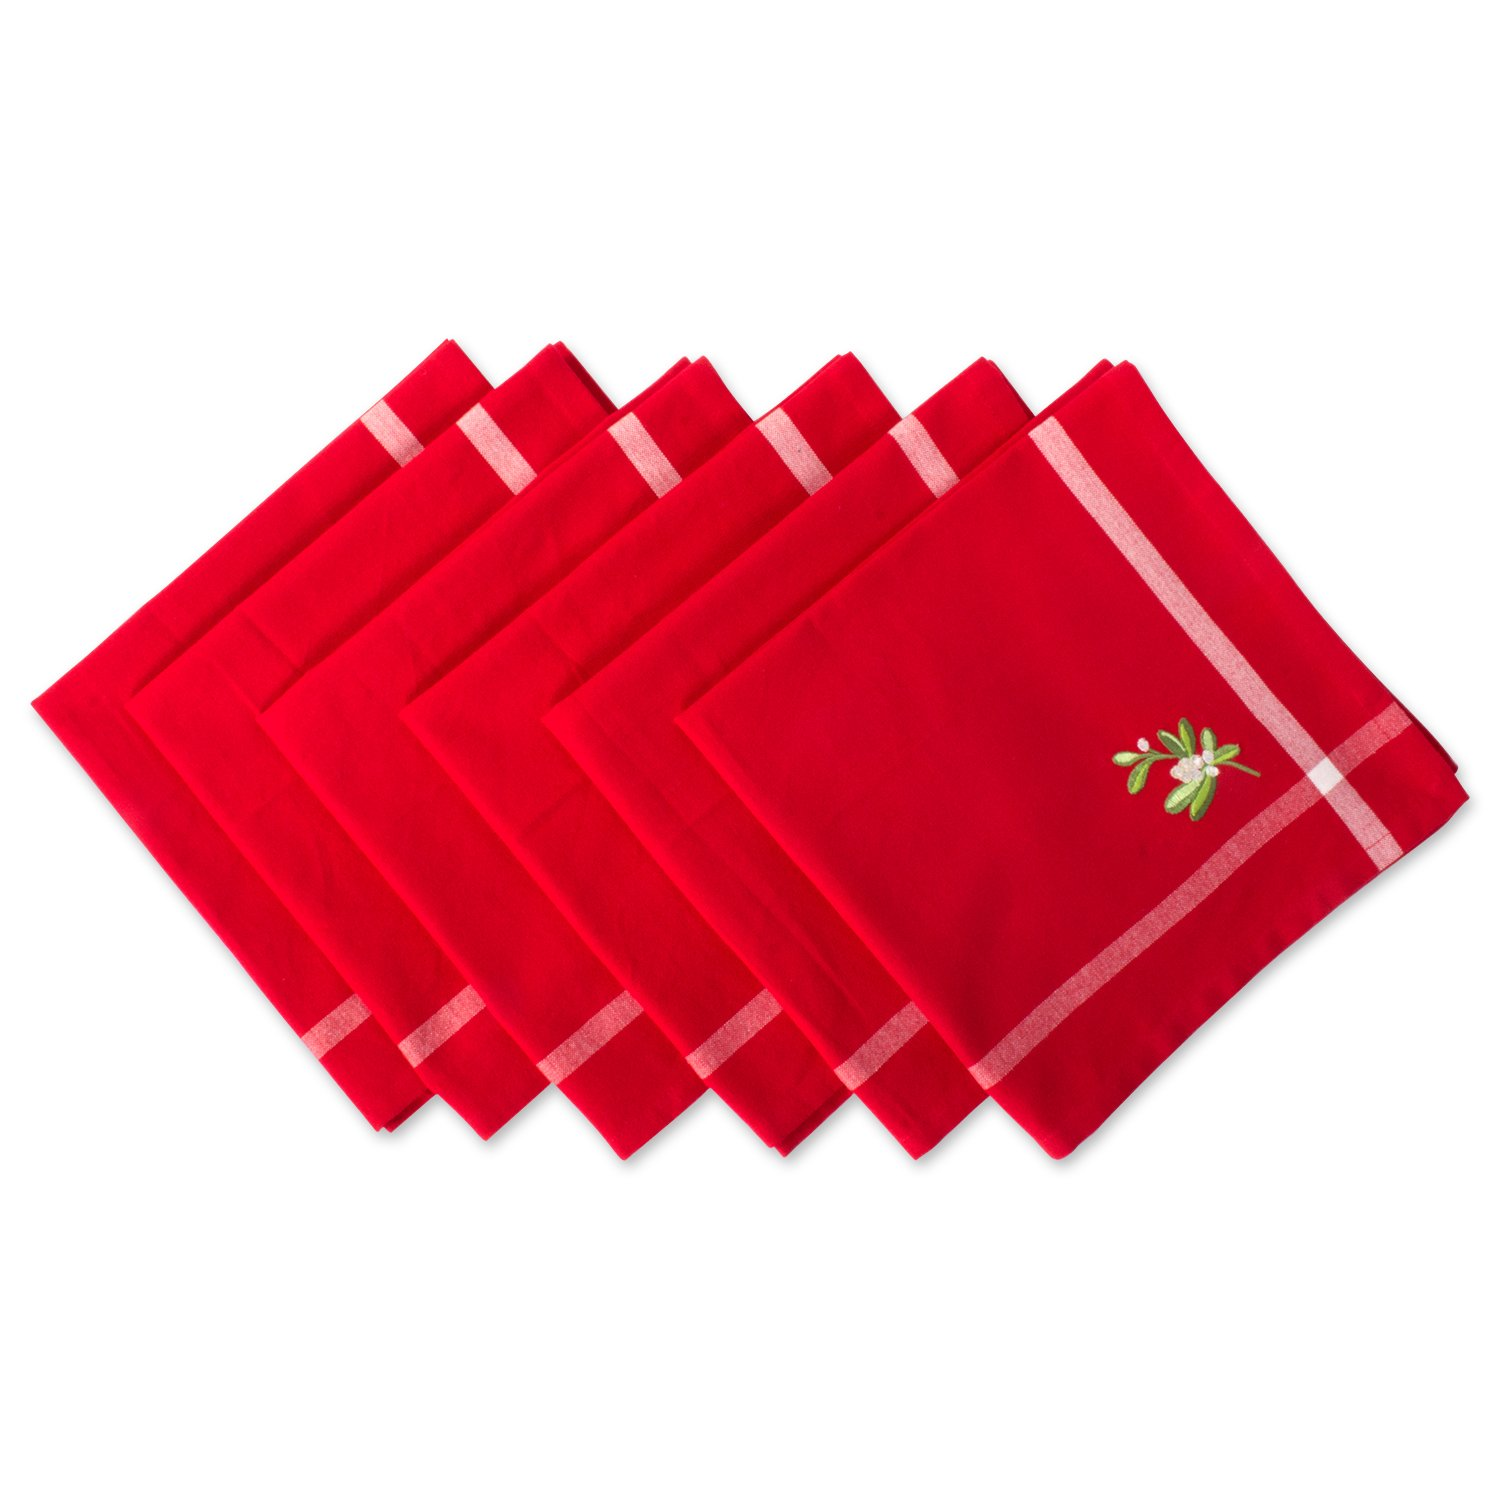 DII 100% Cotton, Machine Washable, Oversized Holiday 20x20'' Napkin Set of 6, Red with Embroidered Mistletoe